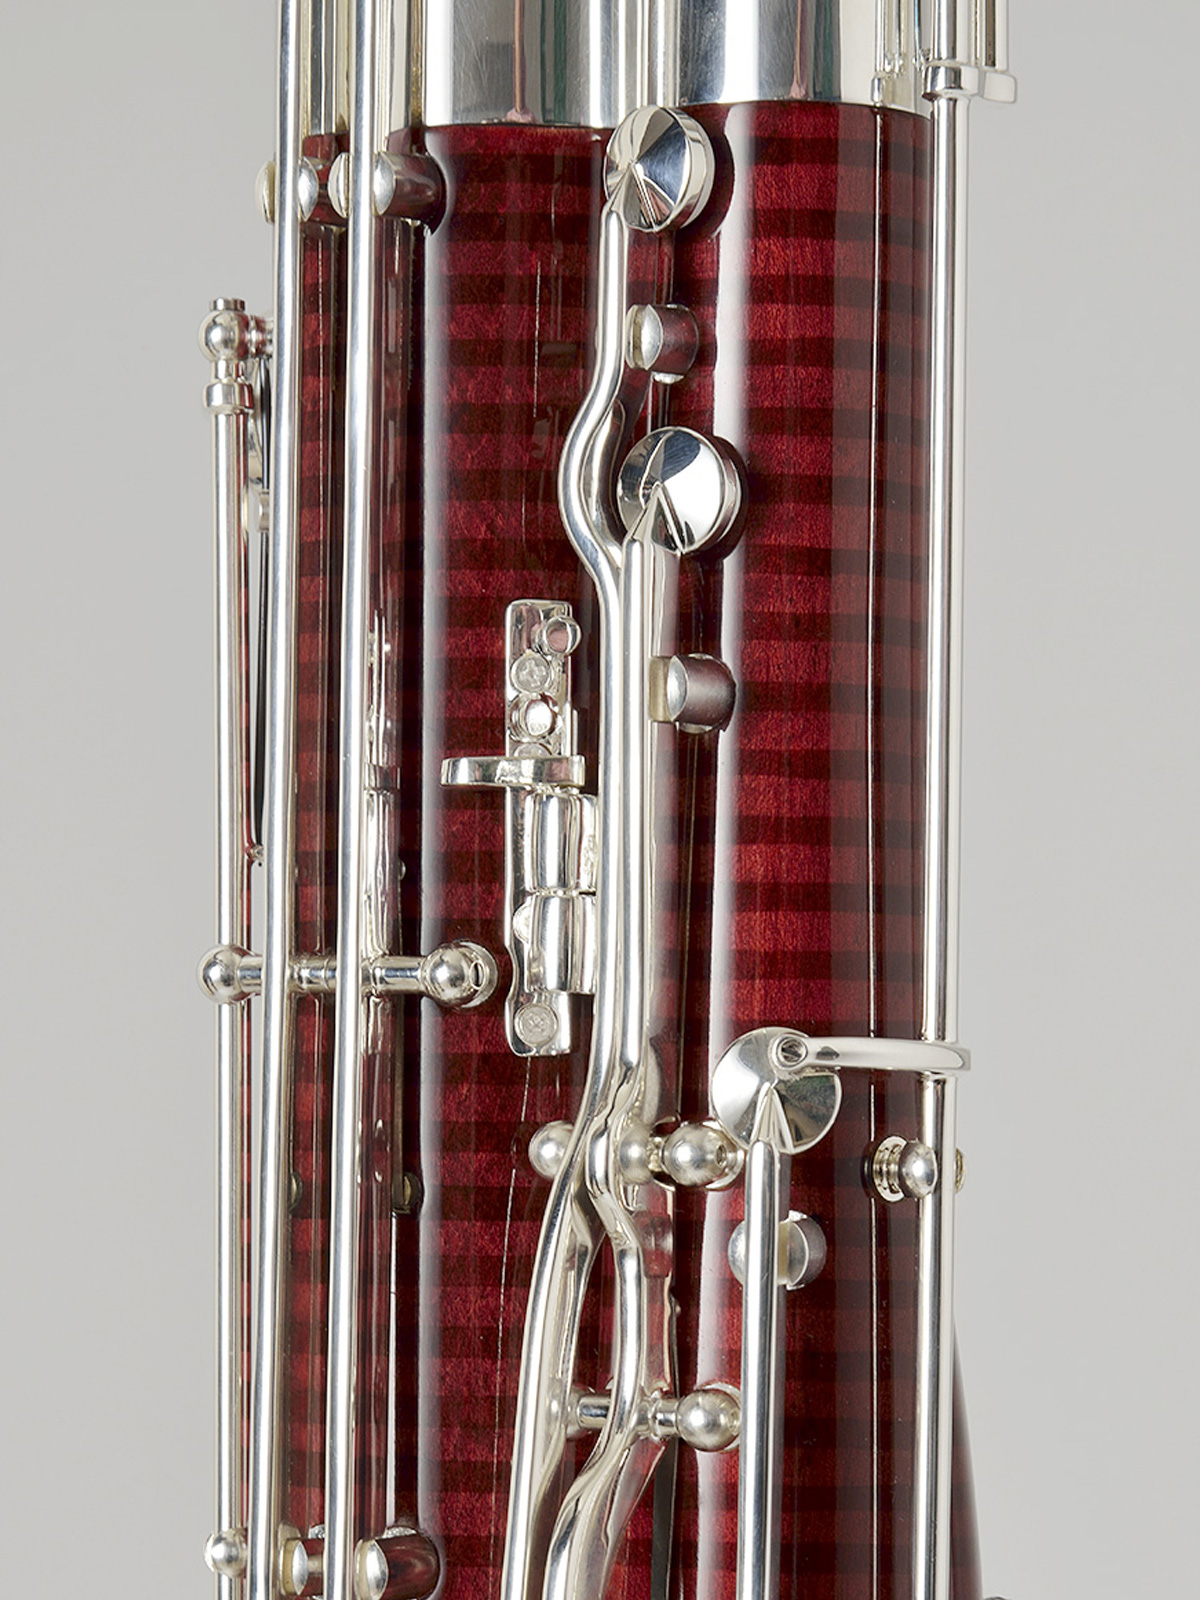 Model 3 – Takeda Bassoon